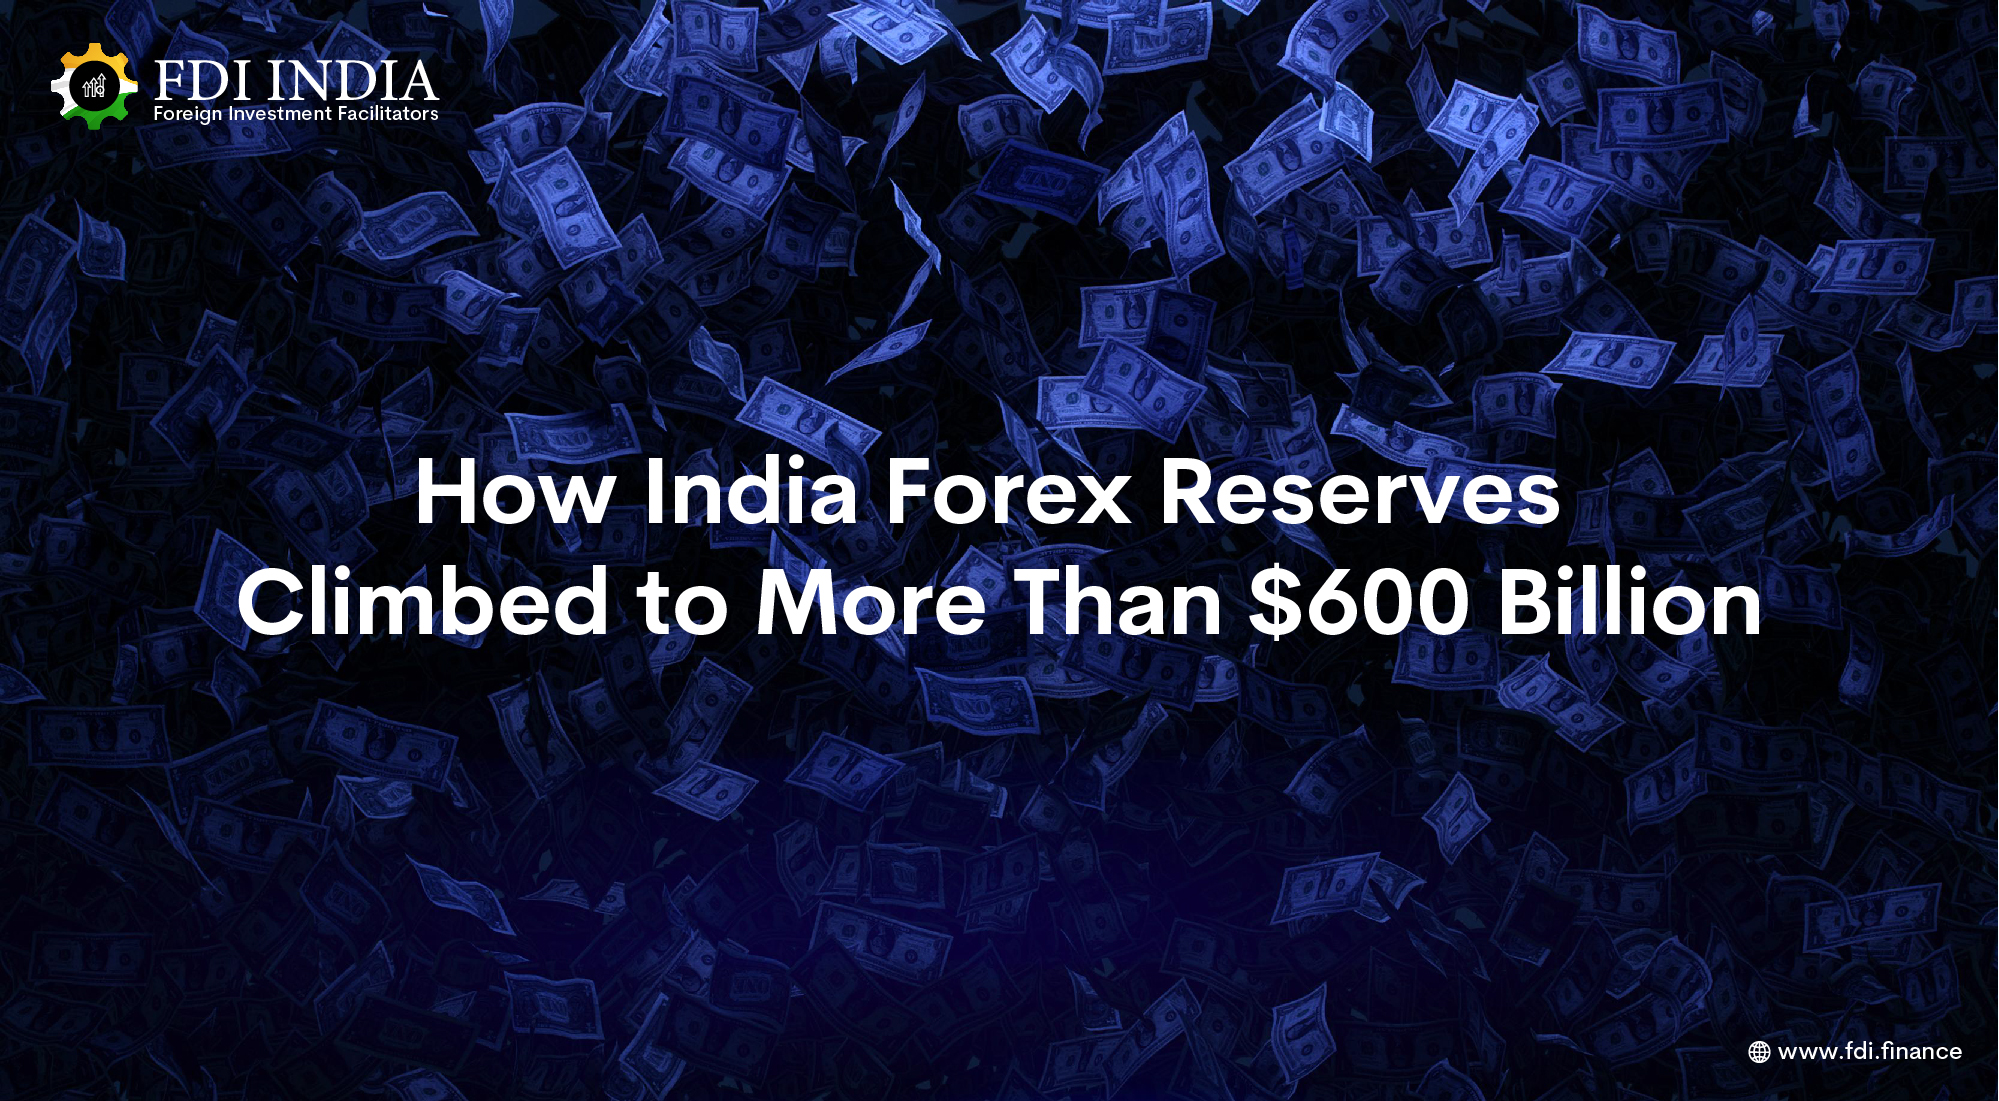 How India Forex Reserves Climbed to More Than $600 Billion